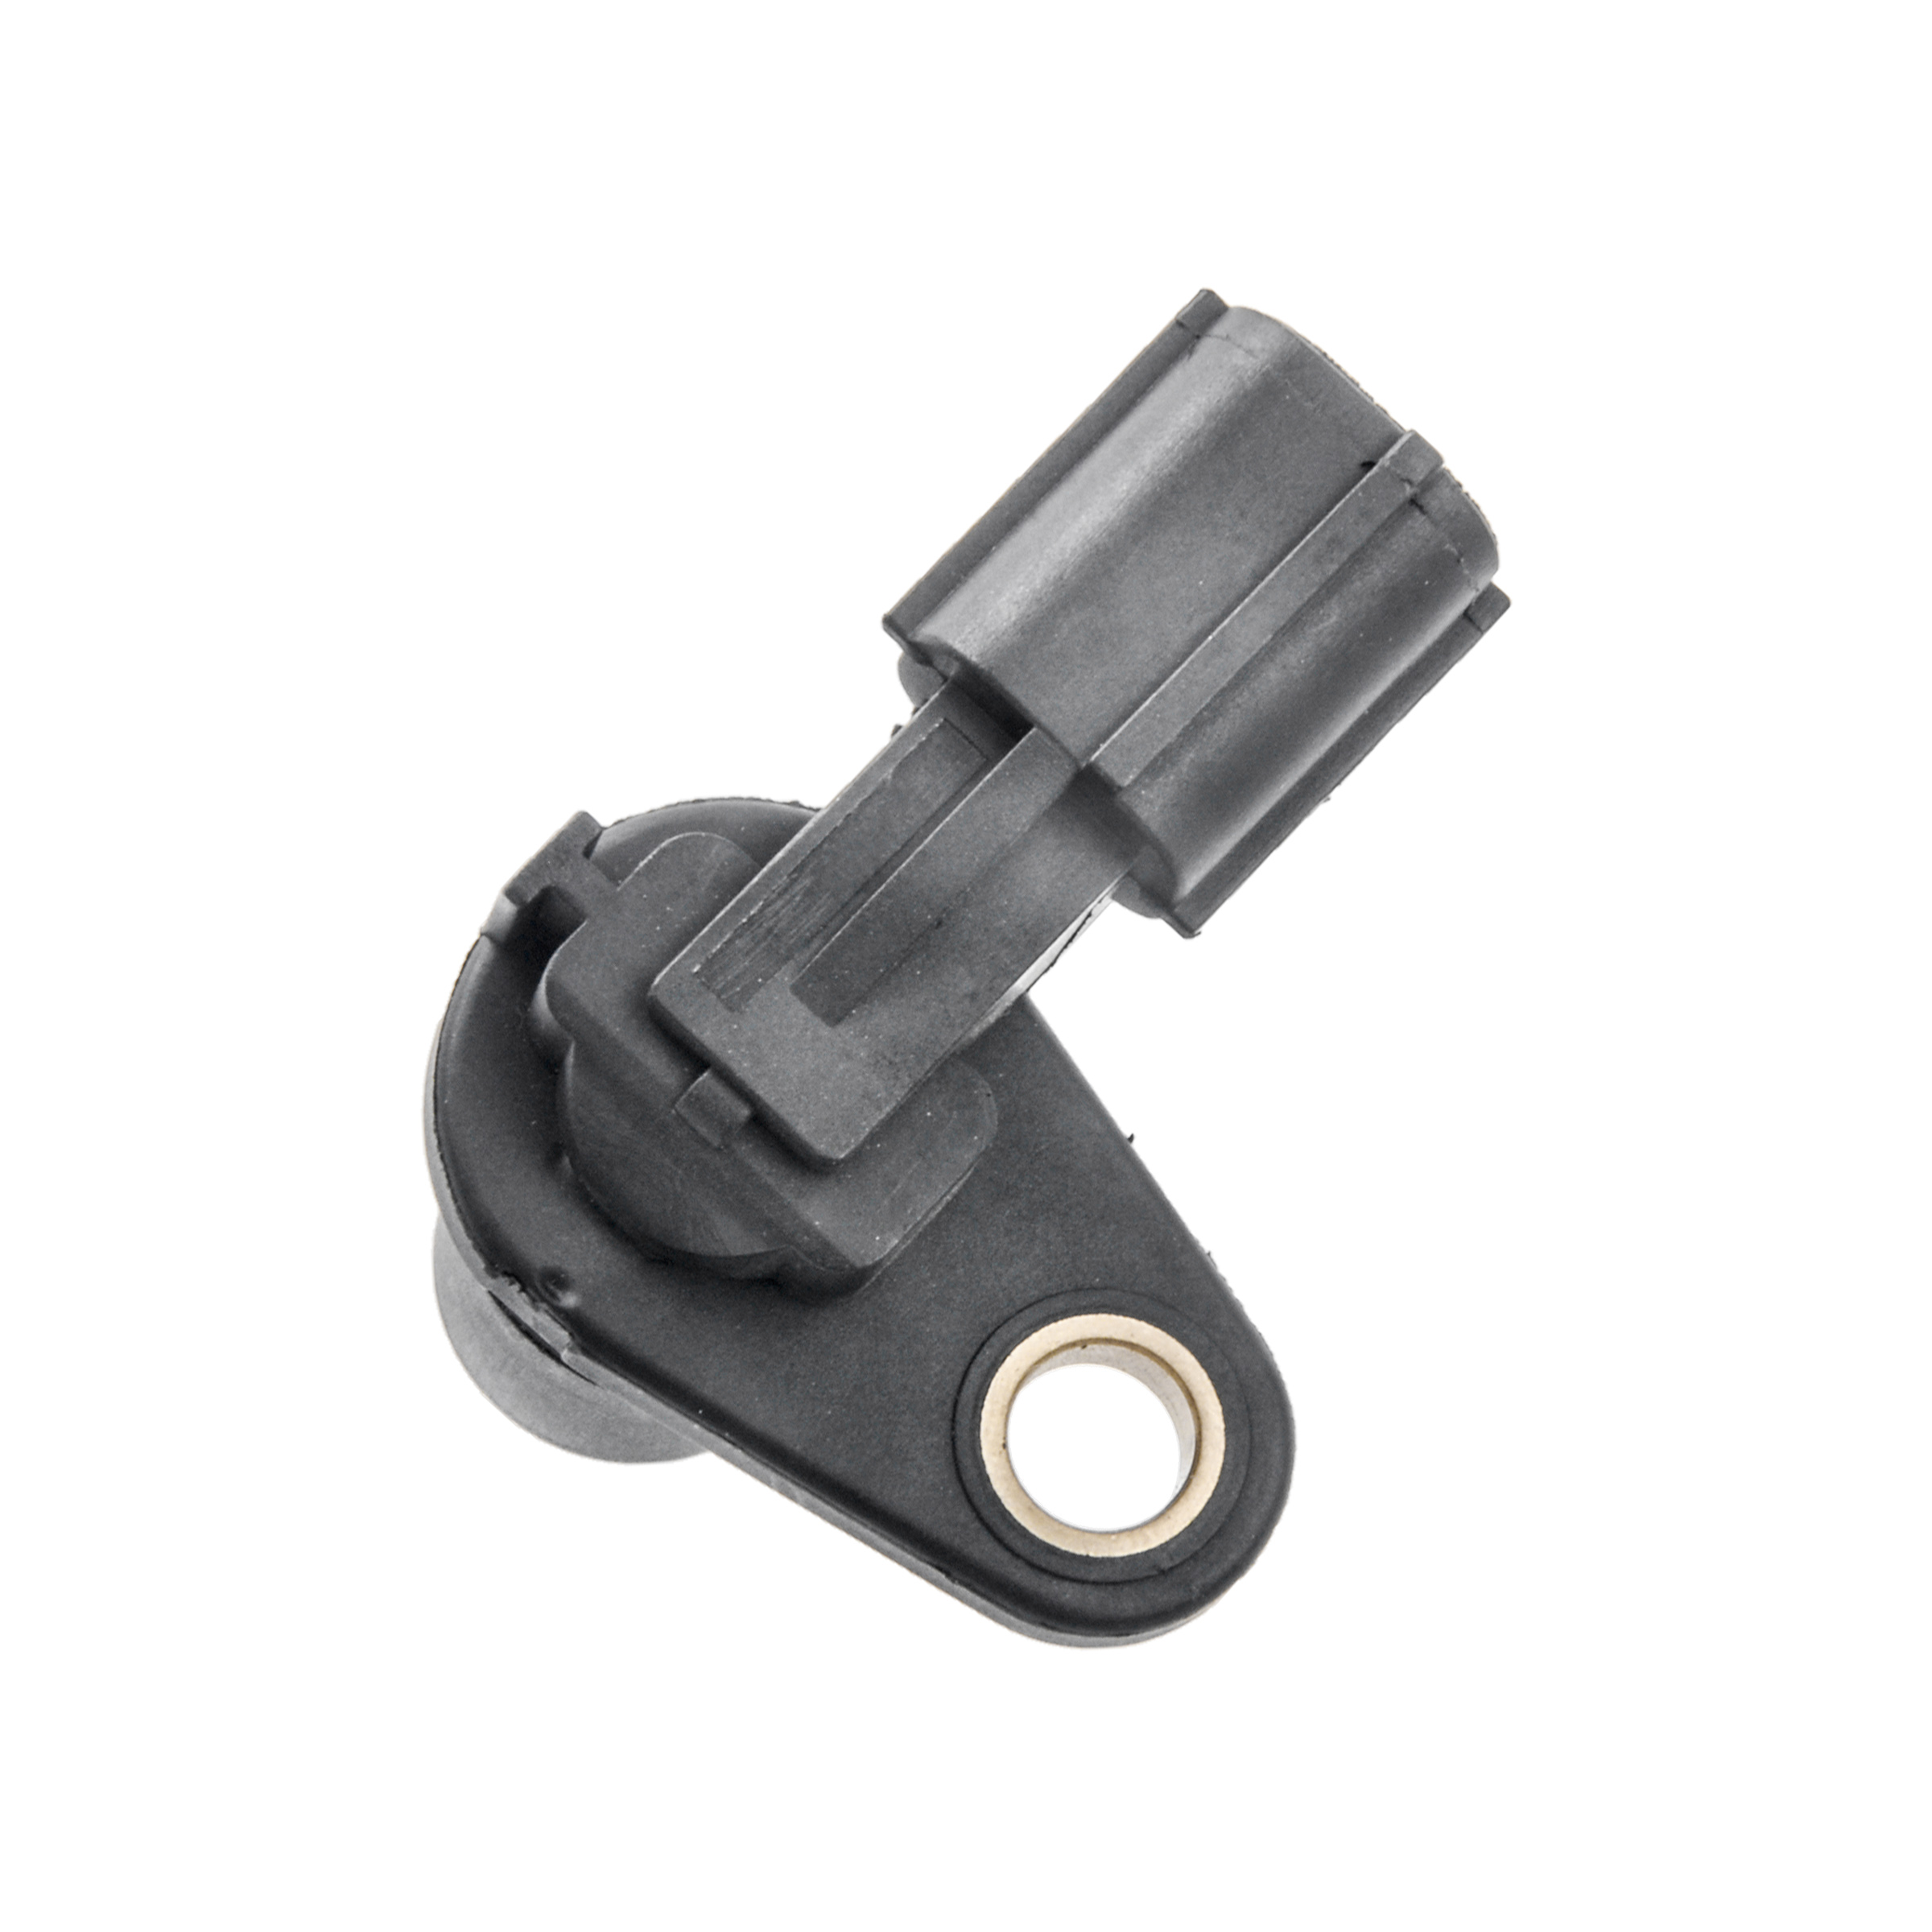 New Herko Camshaft Position Sensor PCH430 For Ford & Mazda